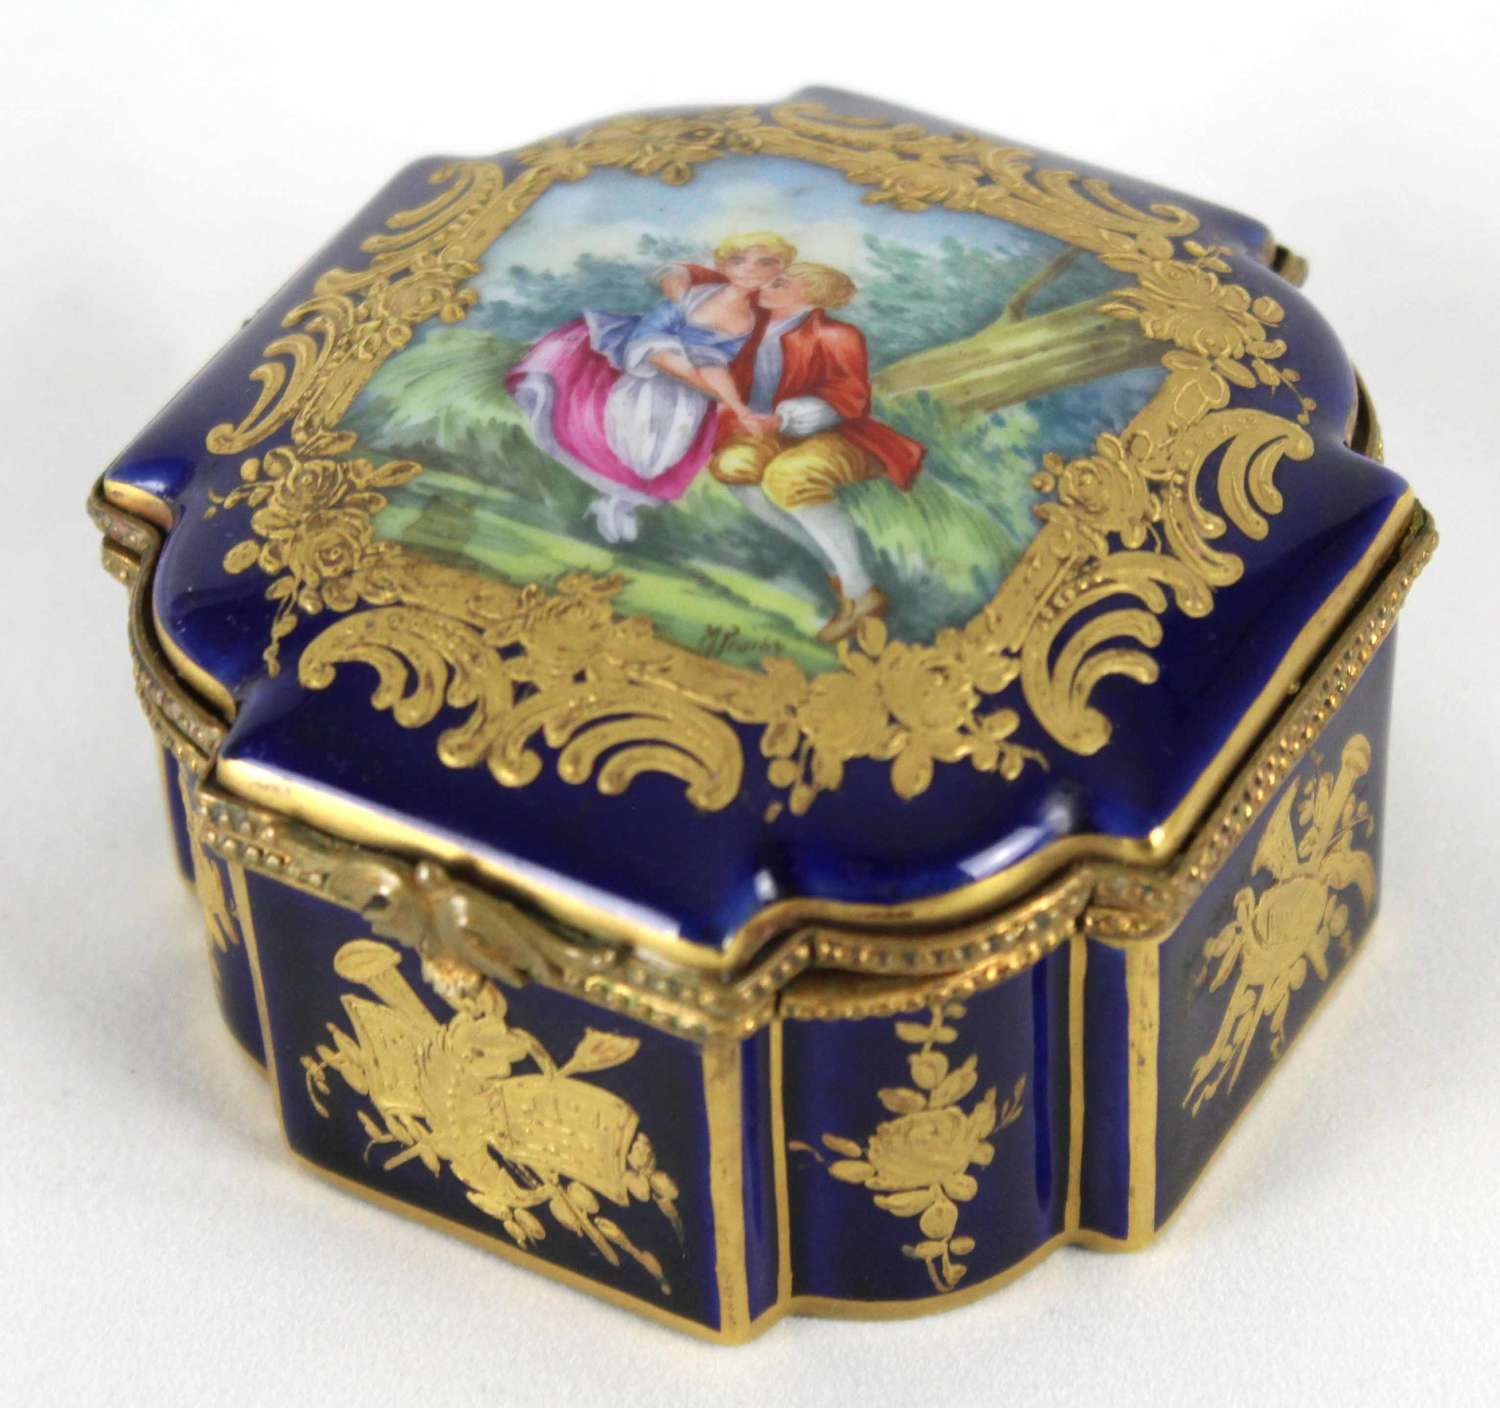 A Late 19th C. French Gros Bleu Porcelain Shaped Square Casket